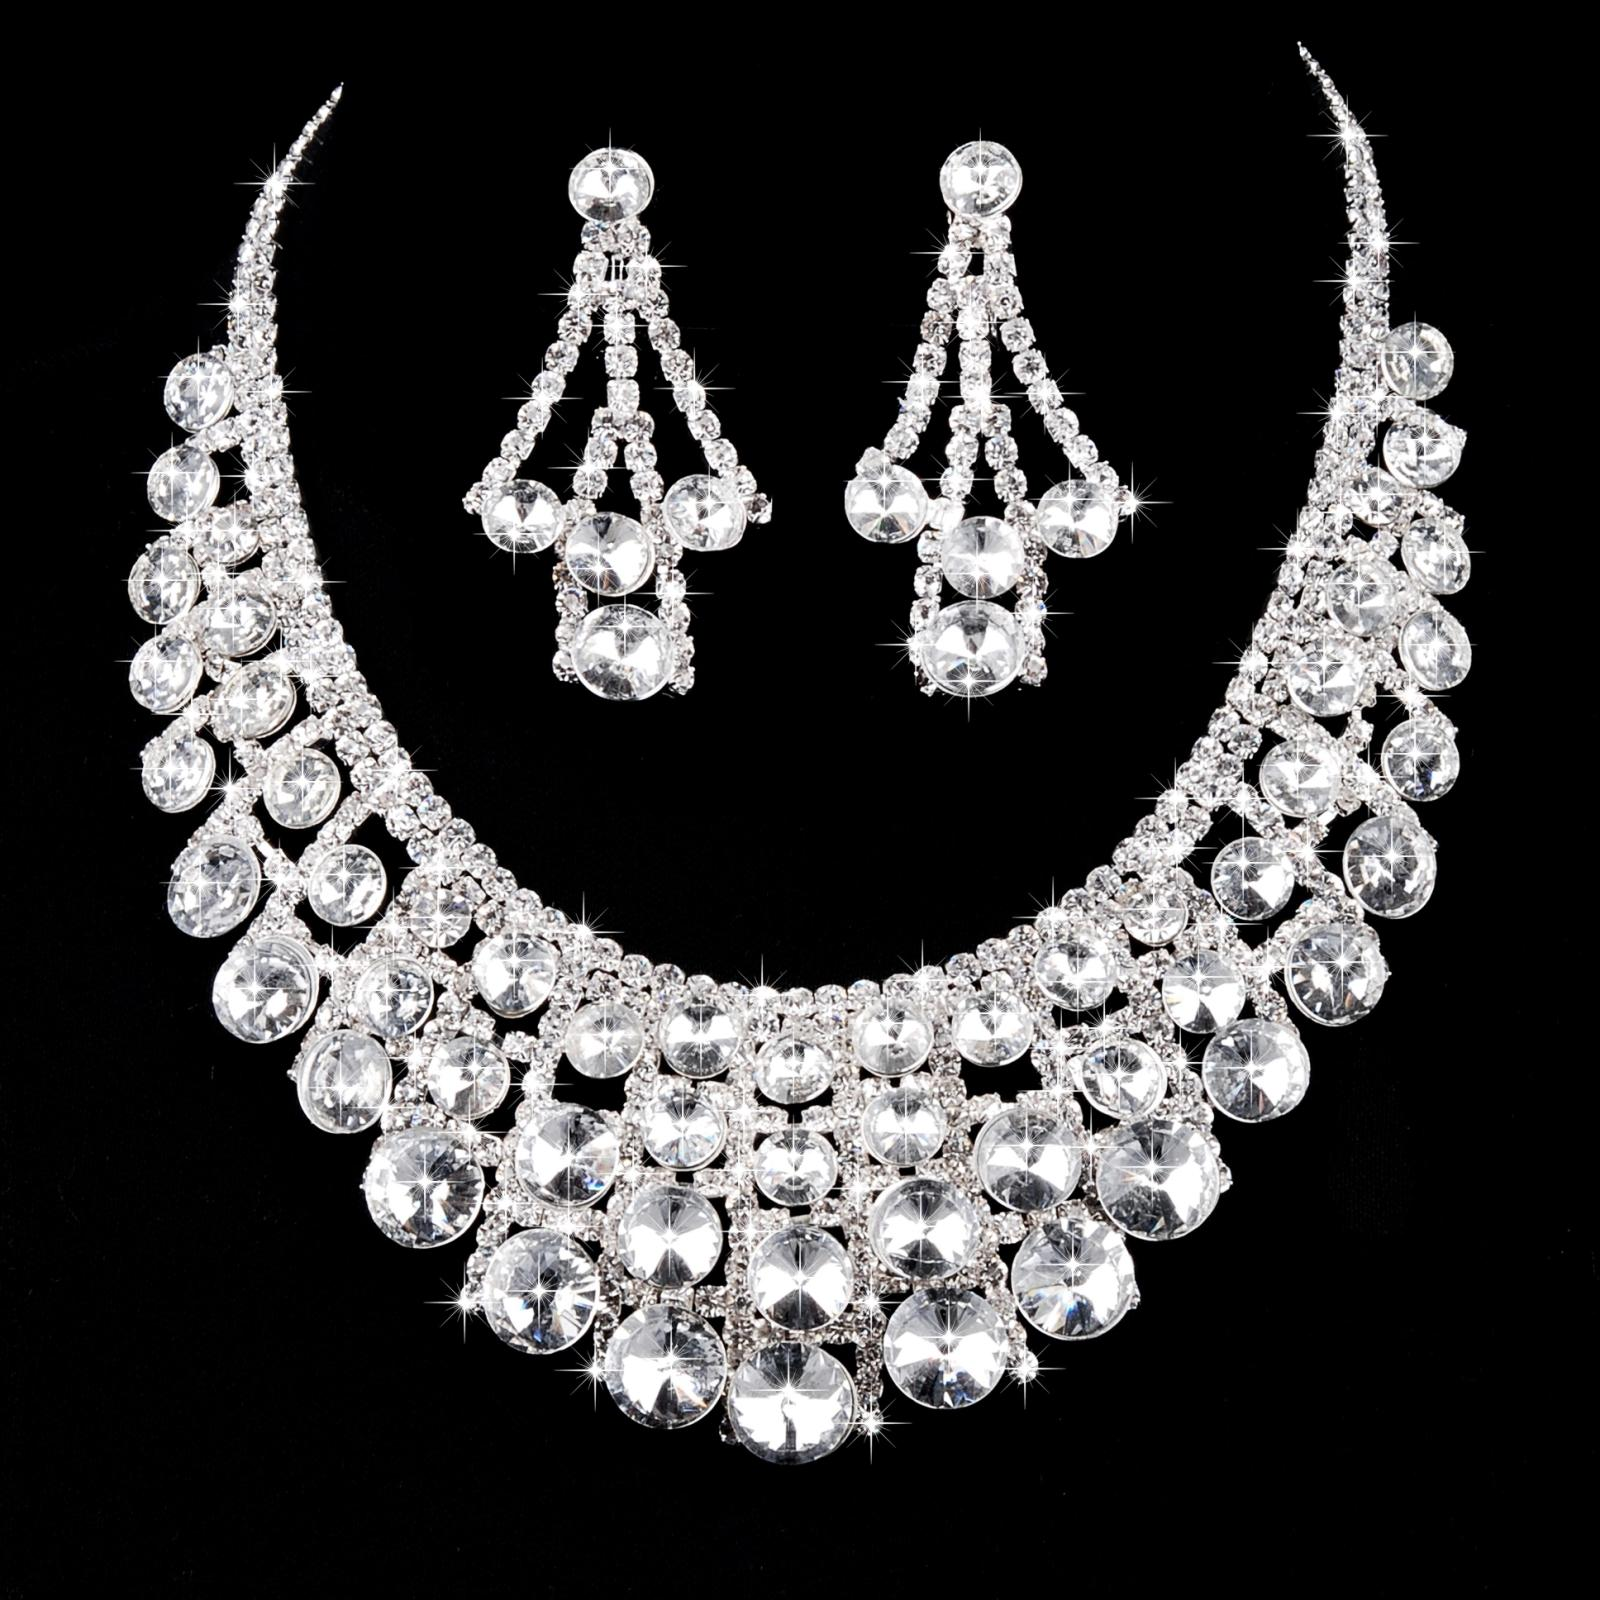 China Diamond Bridal Necklace China Diamond Bridal Necklace